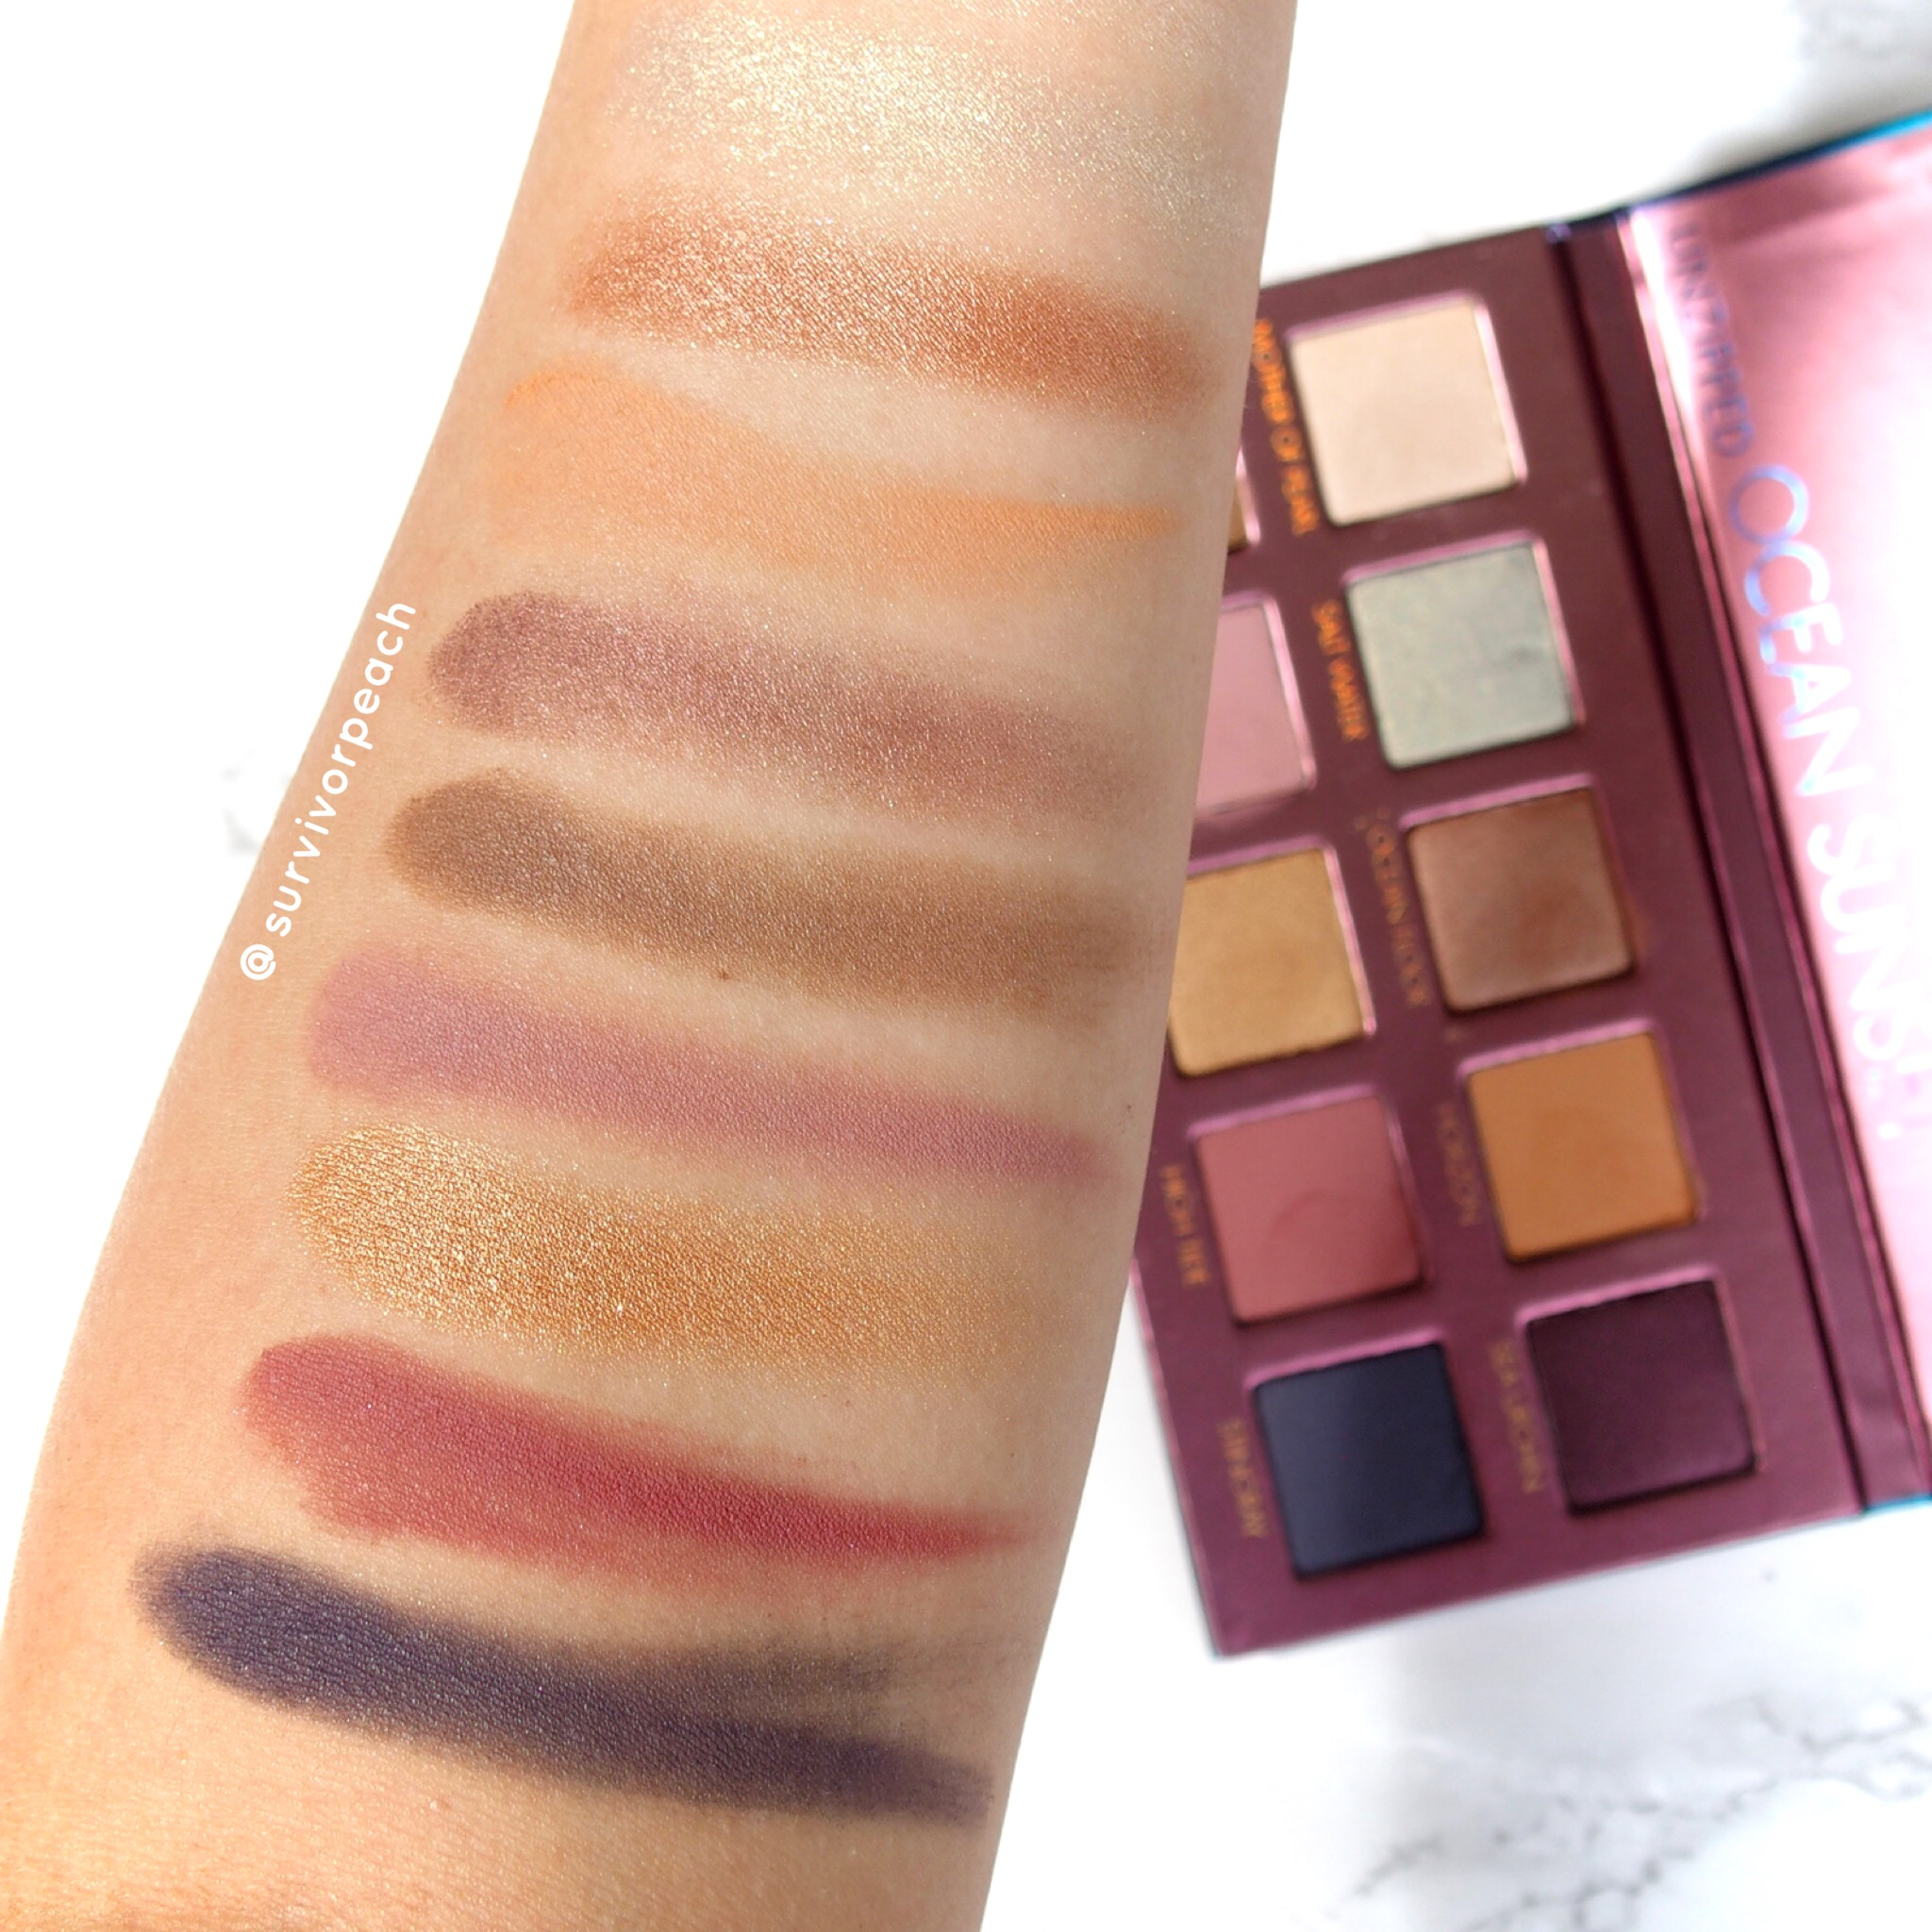 Swatches of the Left side of the Lorac Sunset Upzipped Palette